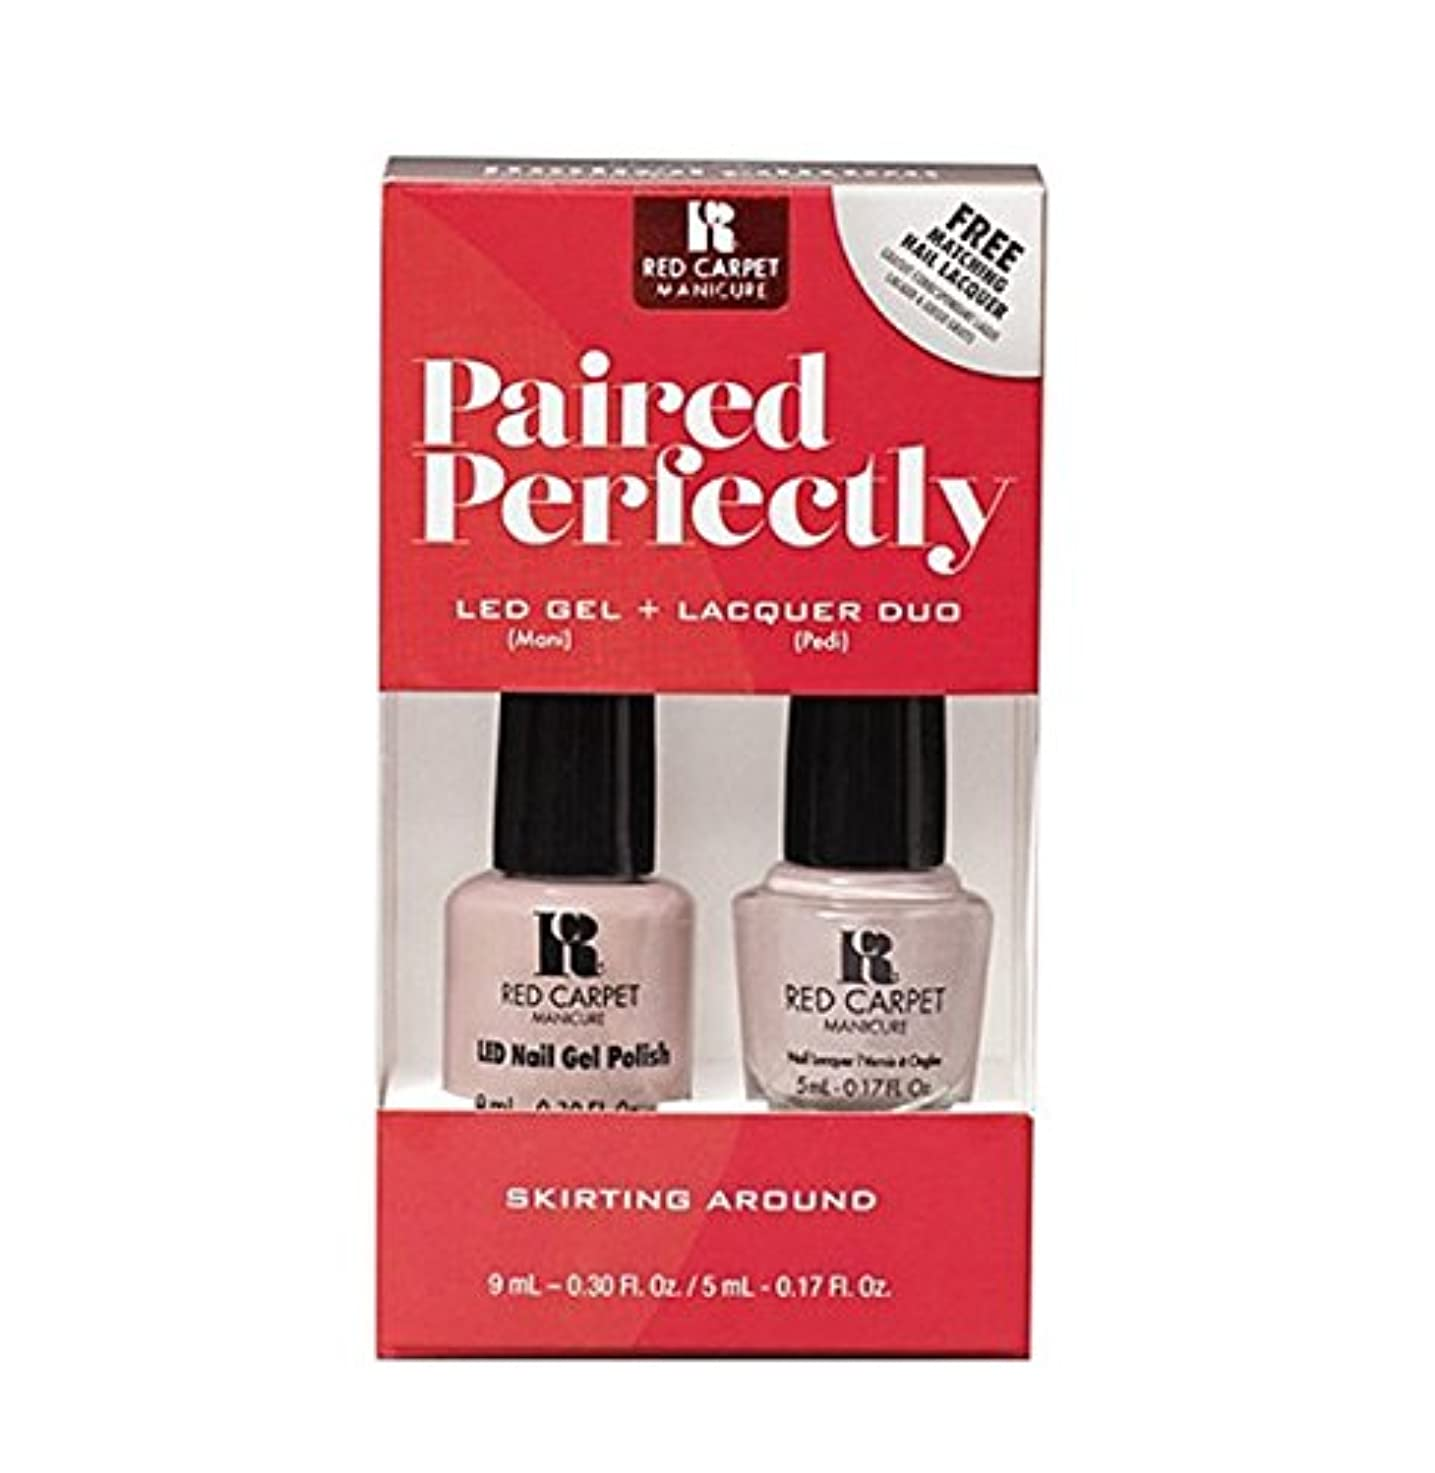 プライムサイズ目を覚ますRed Carpet Manicure - Paired Perfectly GEL & Lacquer DUO - Skirting Around